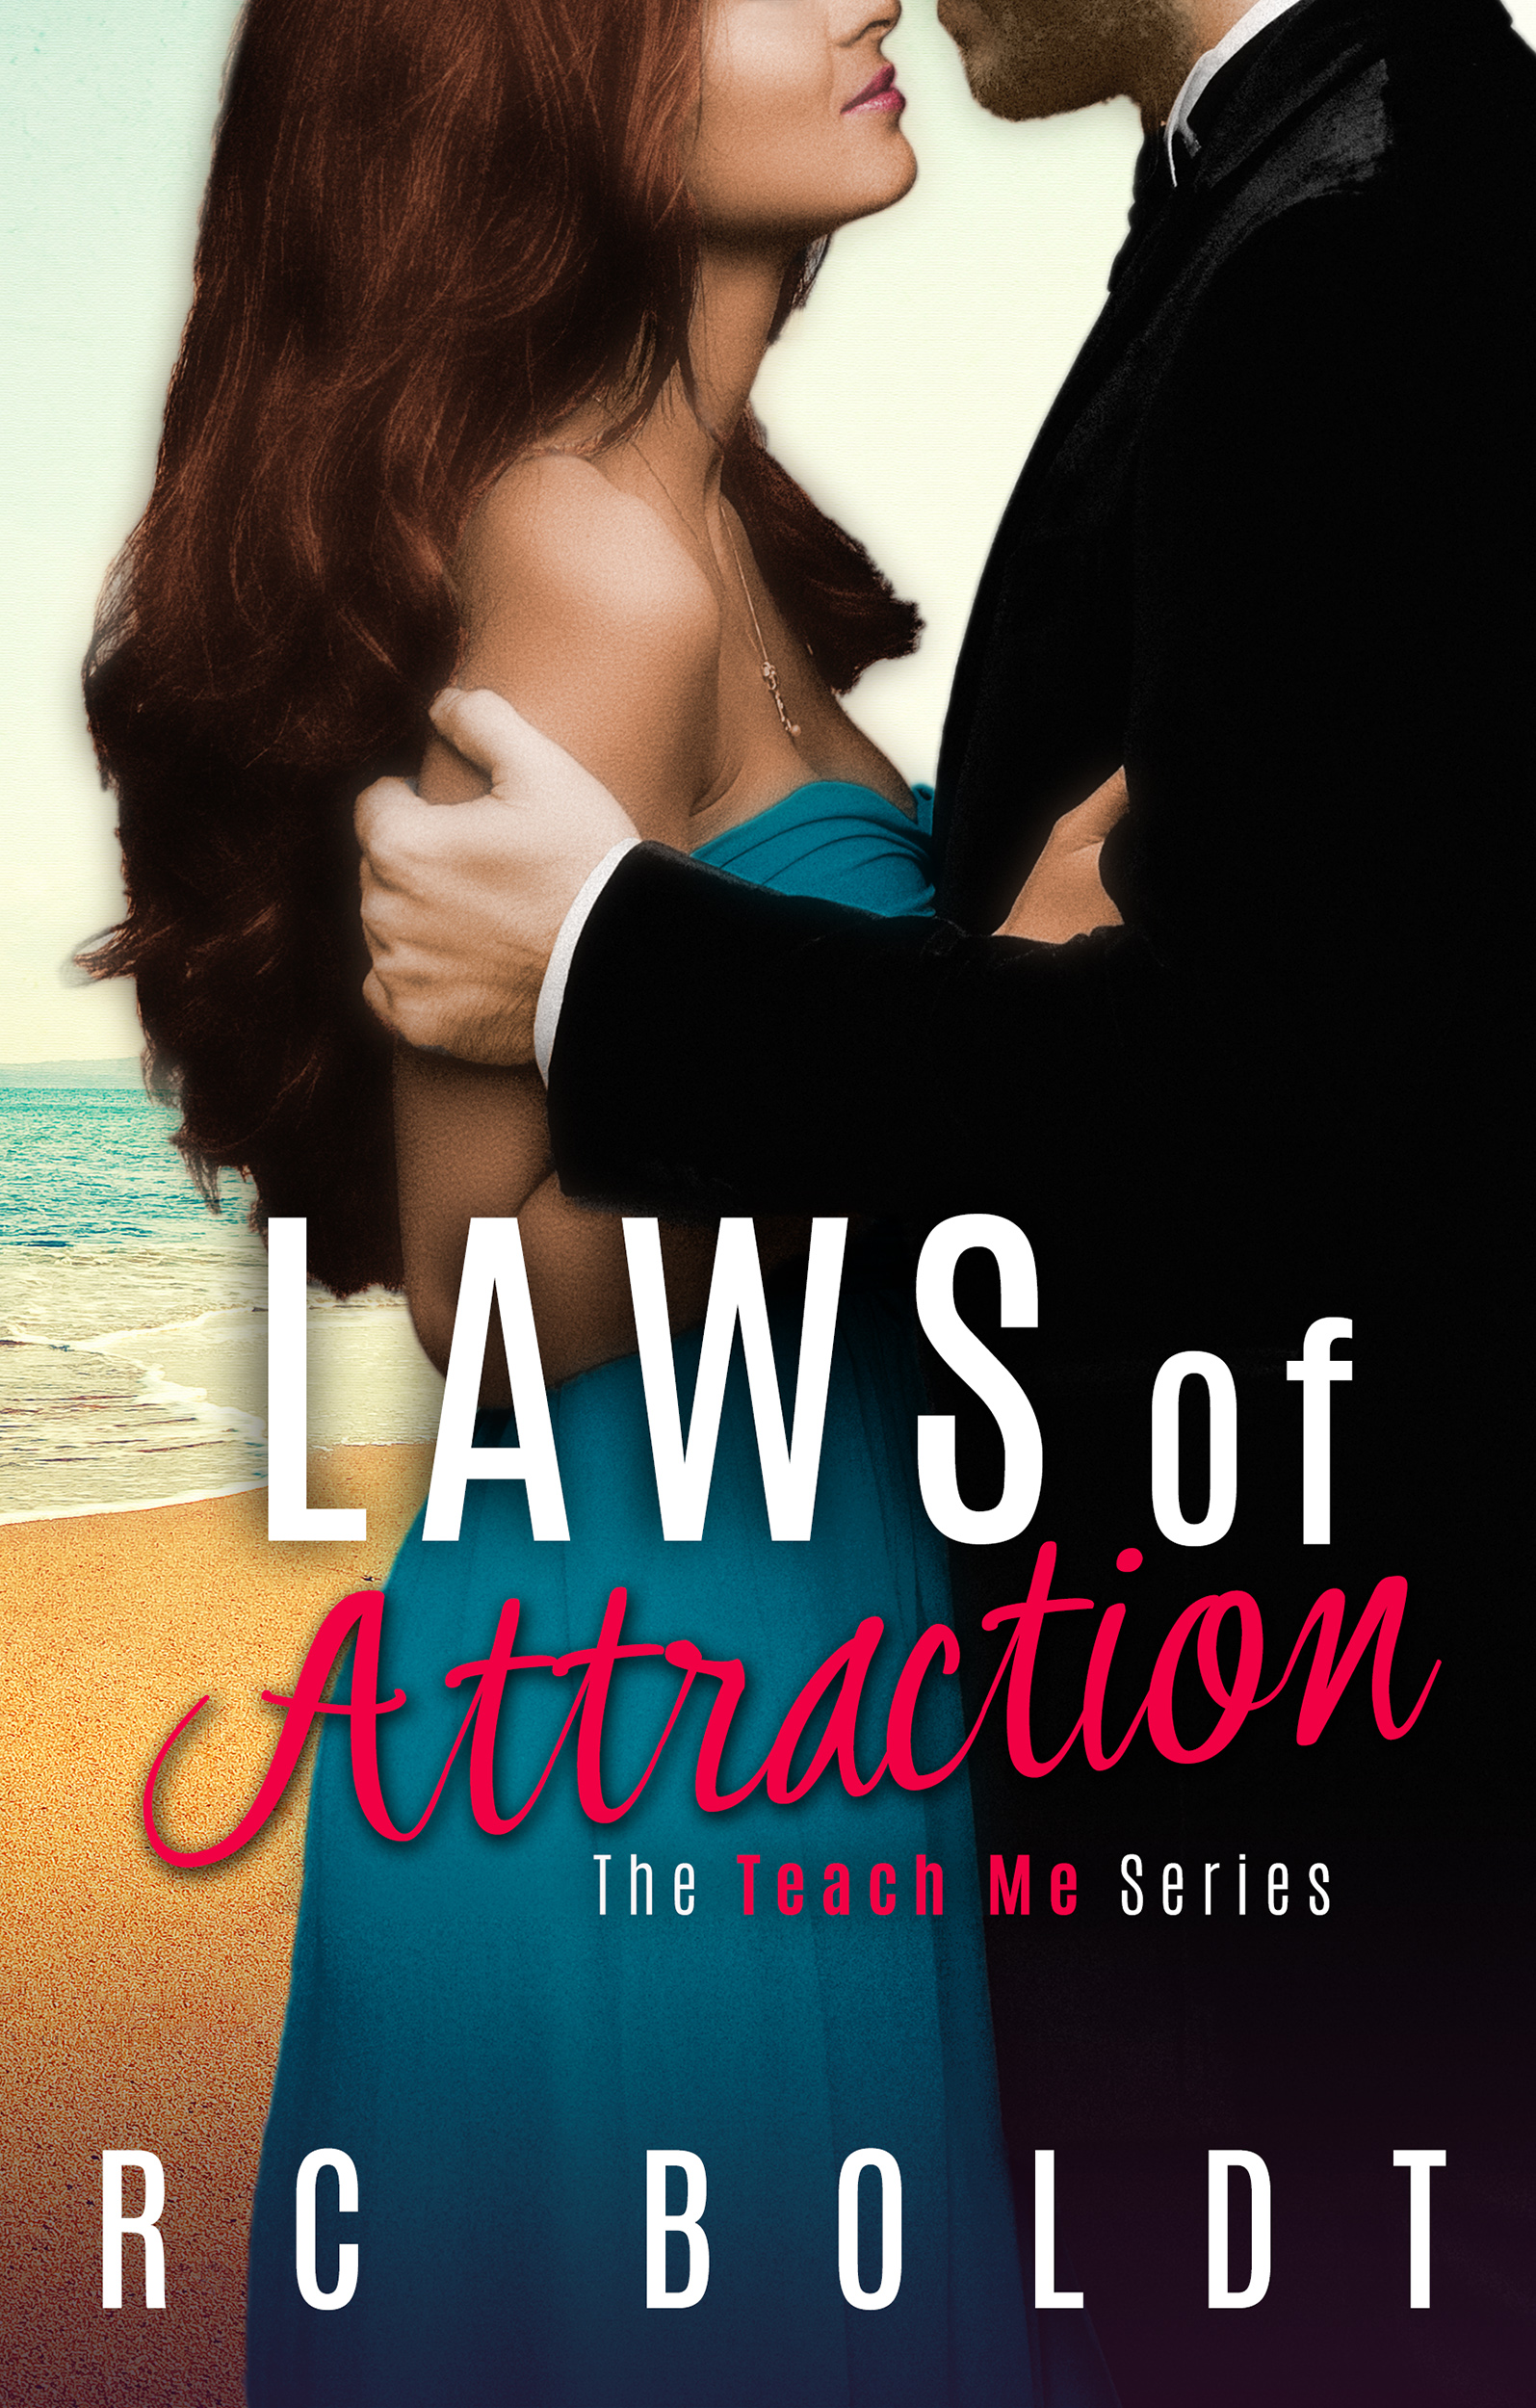 Laws of Attraction by